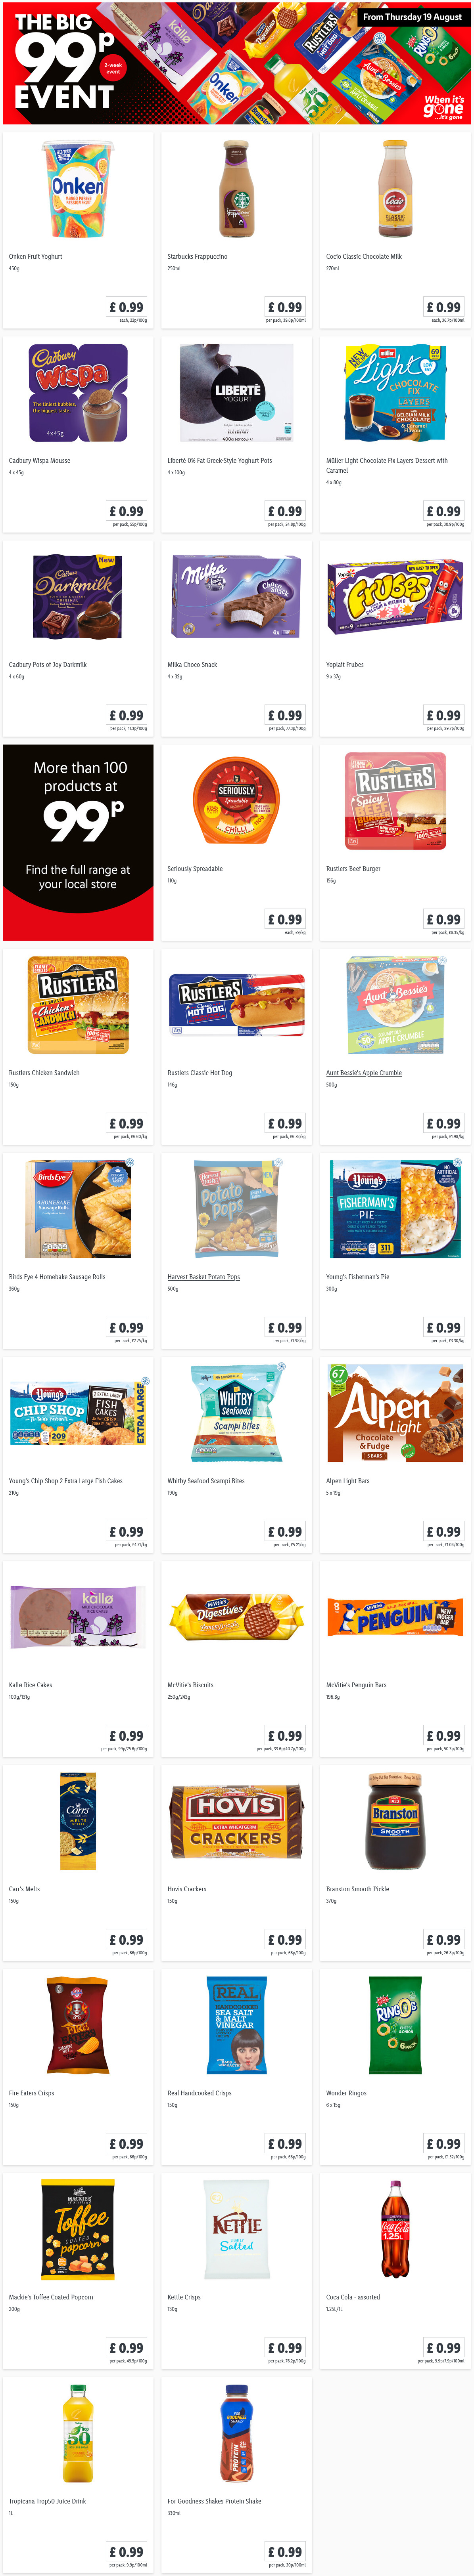 preview LIDL The Big 99p Event From 19/8/2021